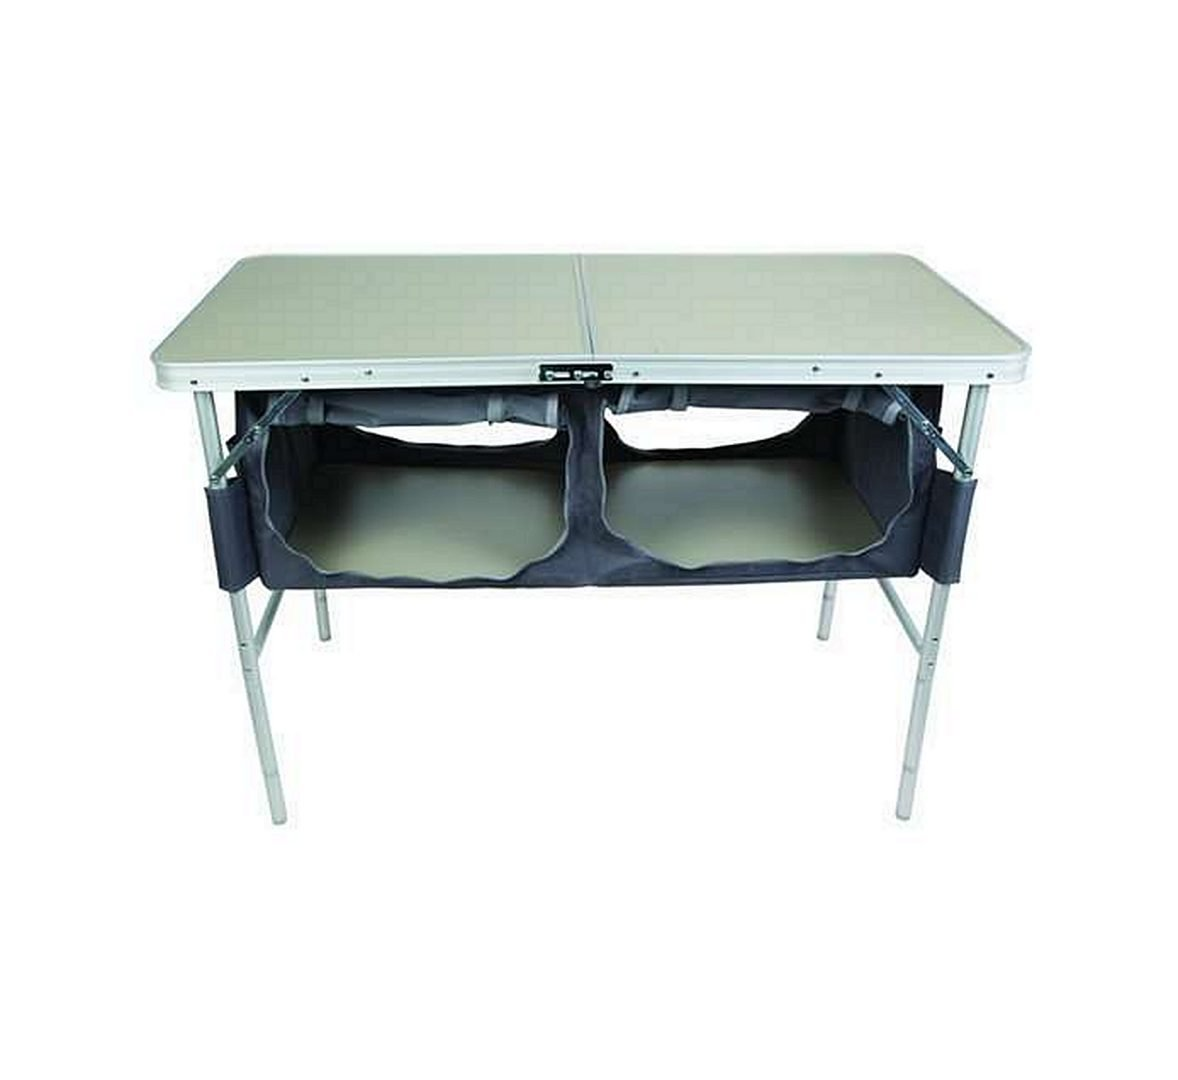 SEATOPIA Aluminum Folding Table with Storage Organizer